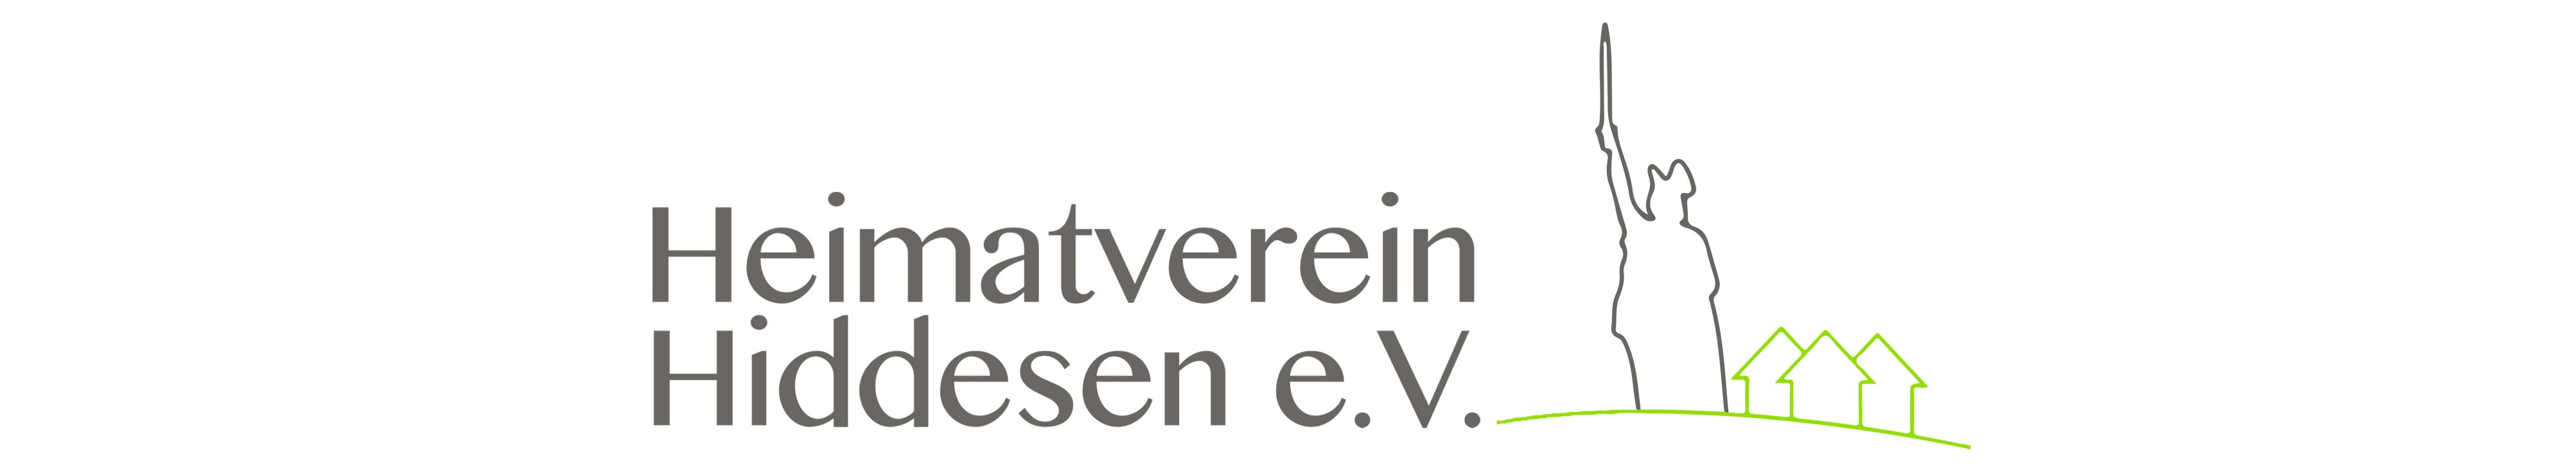 Heimatverein Hiddesen e.V.